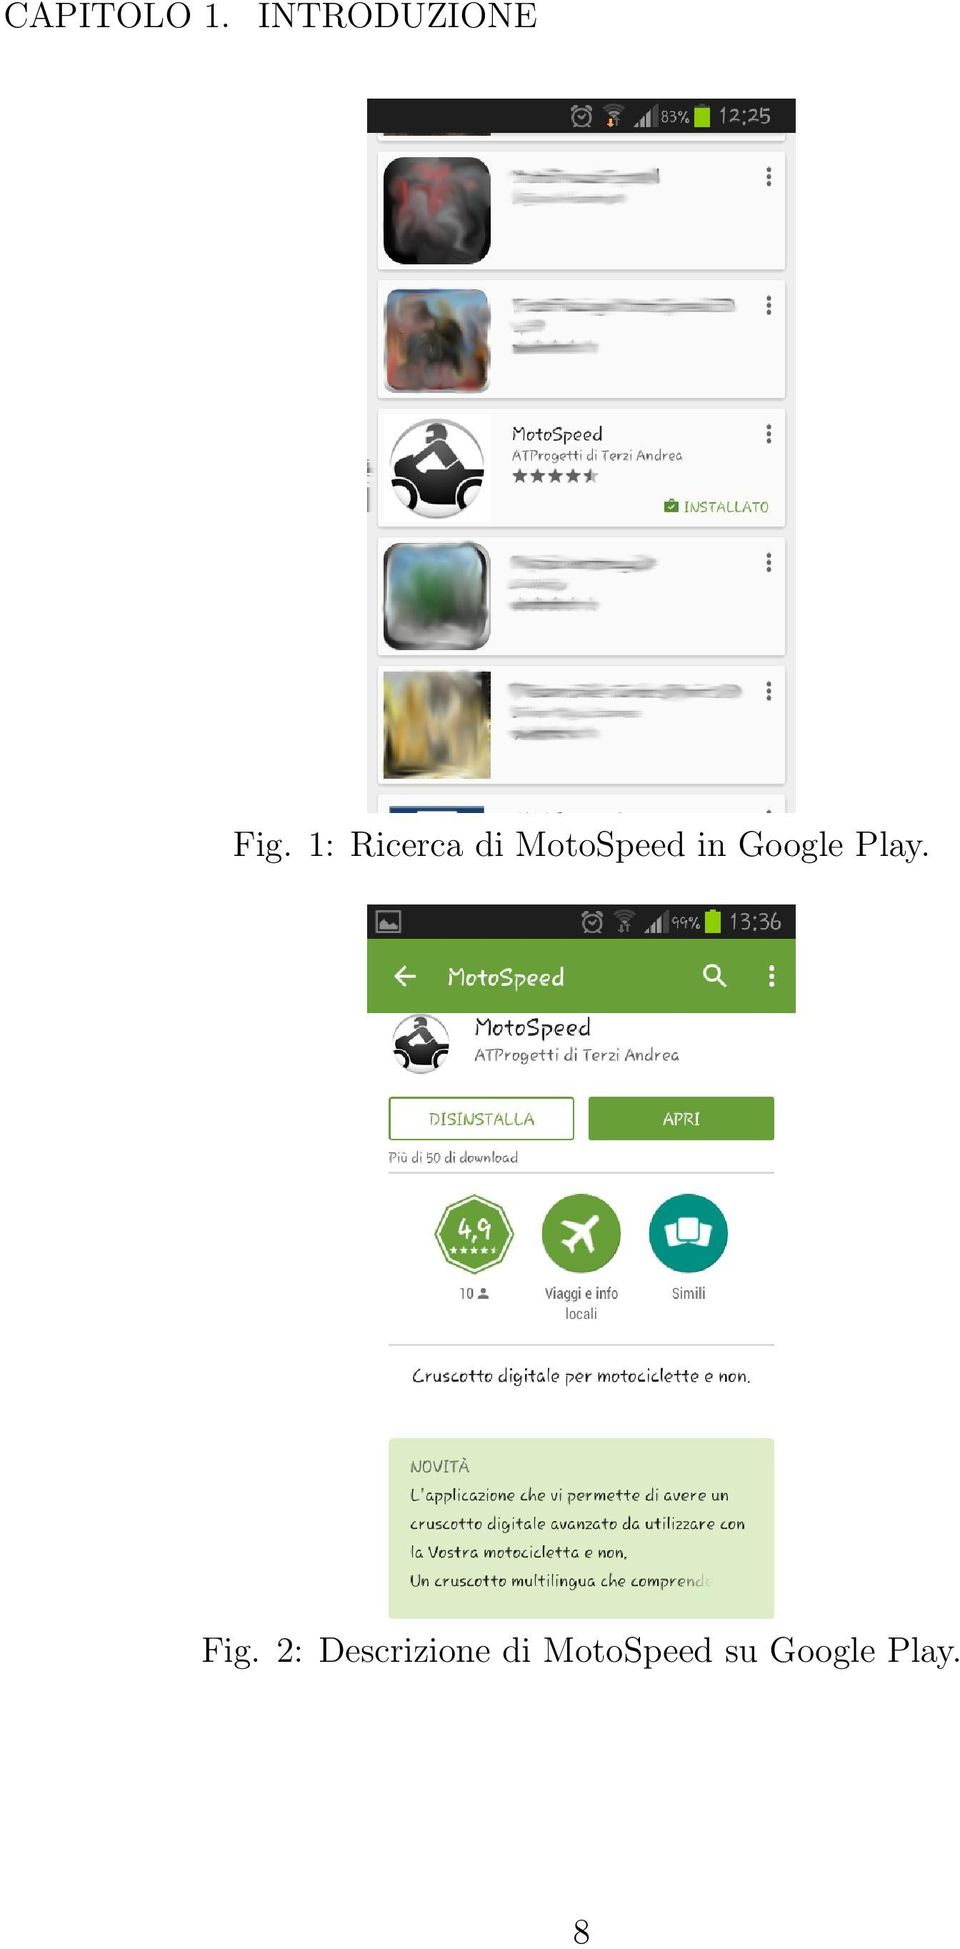 Google Play. Fig.